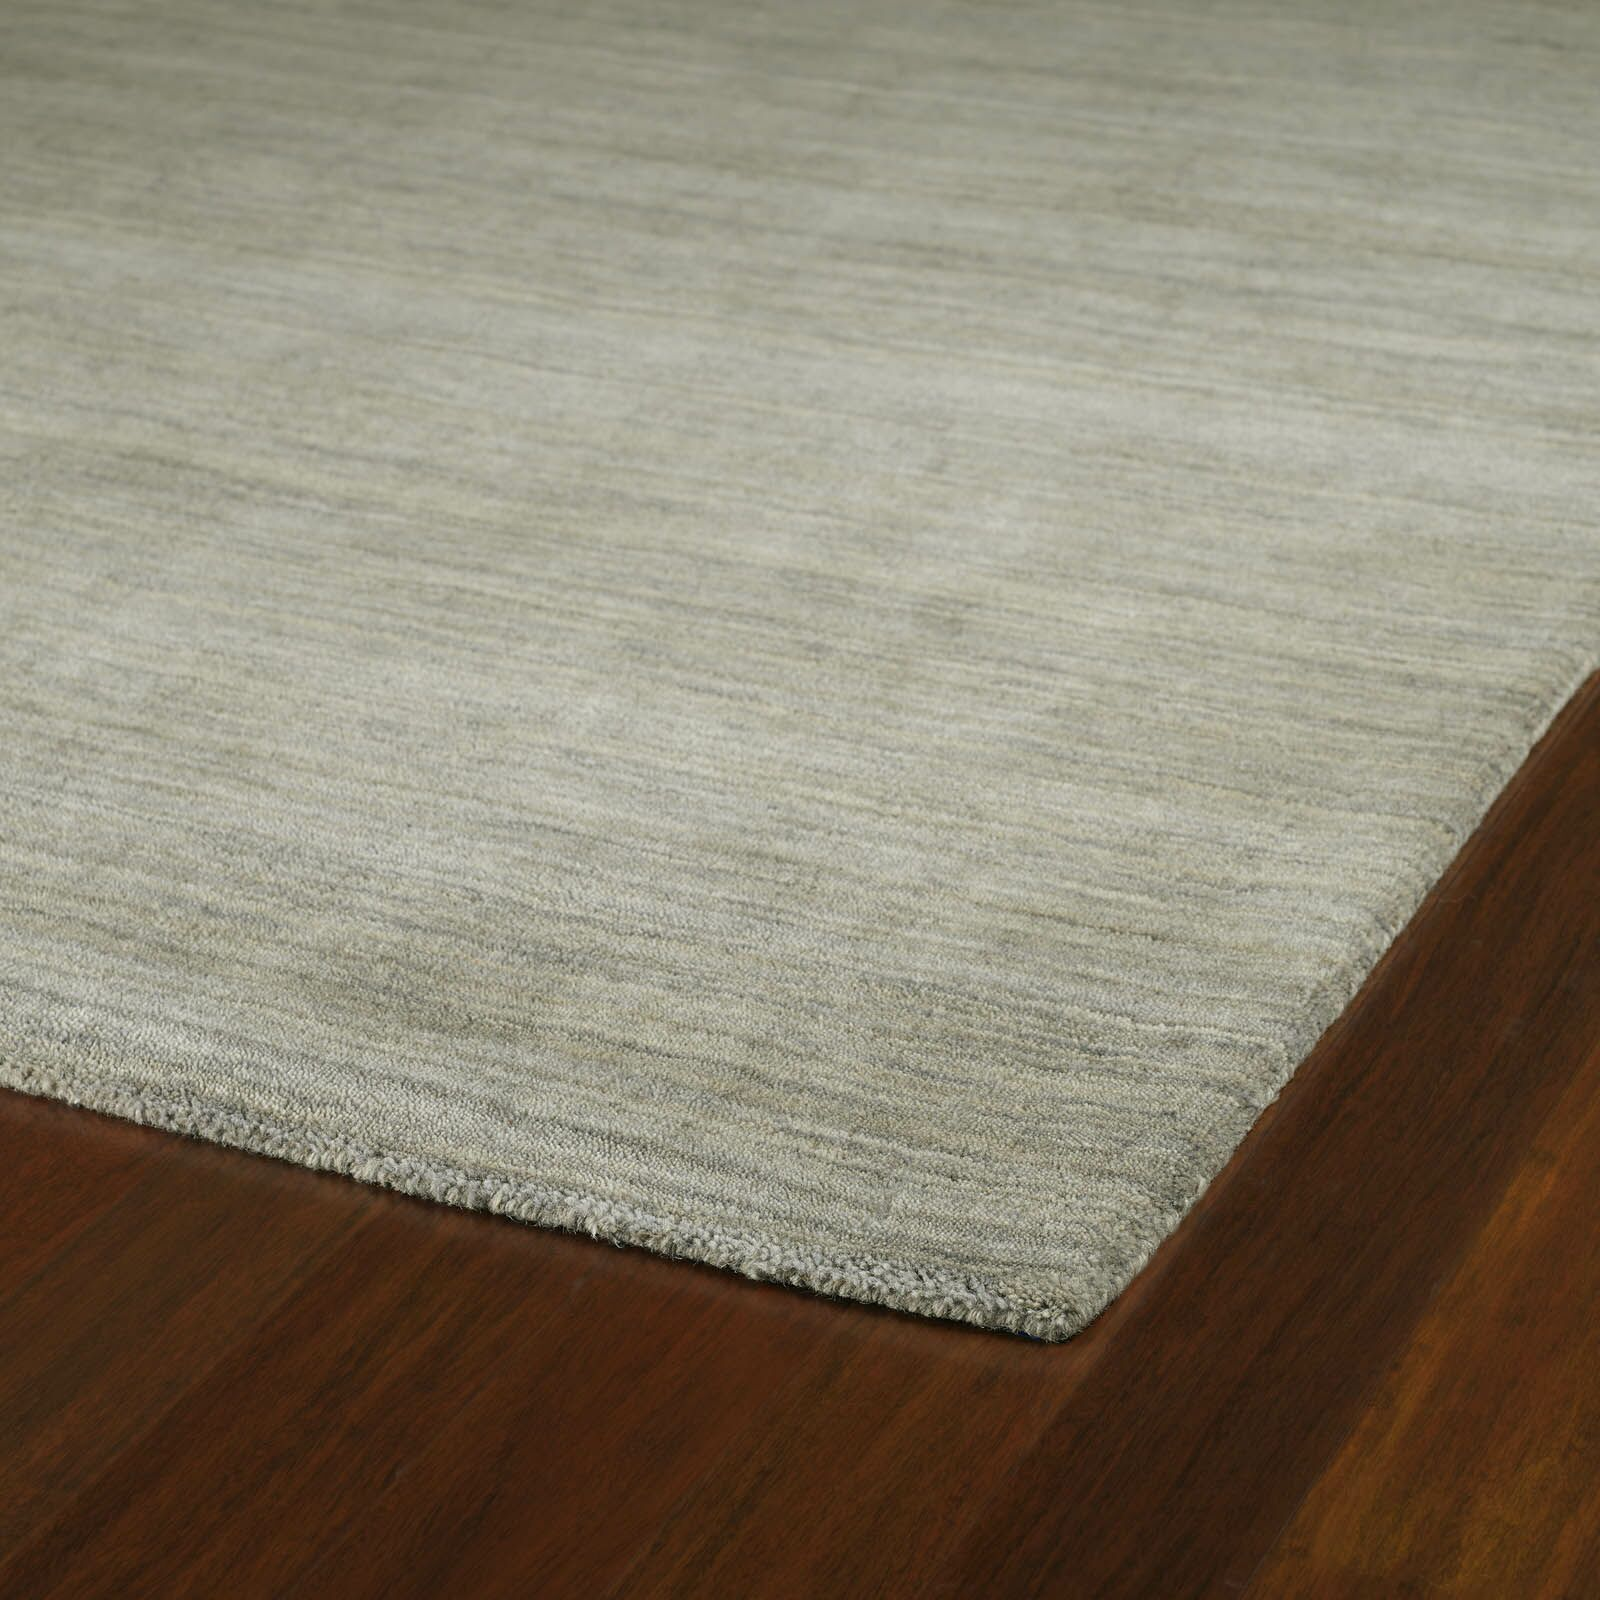 Merseles Graphite Grey Area Rug Rug Size: Rectangle 5' x 7'6